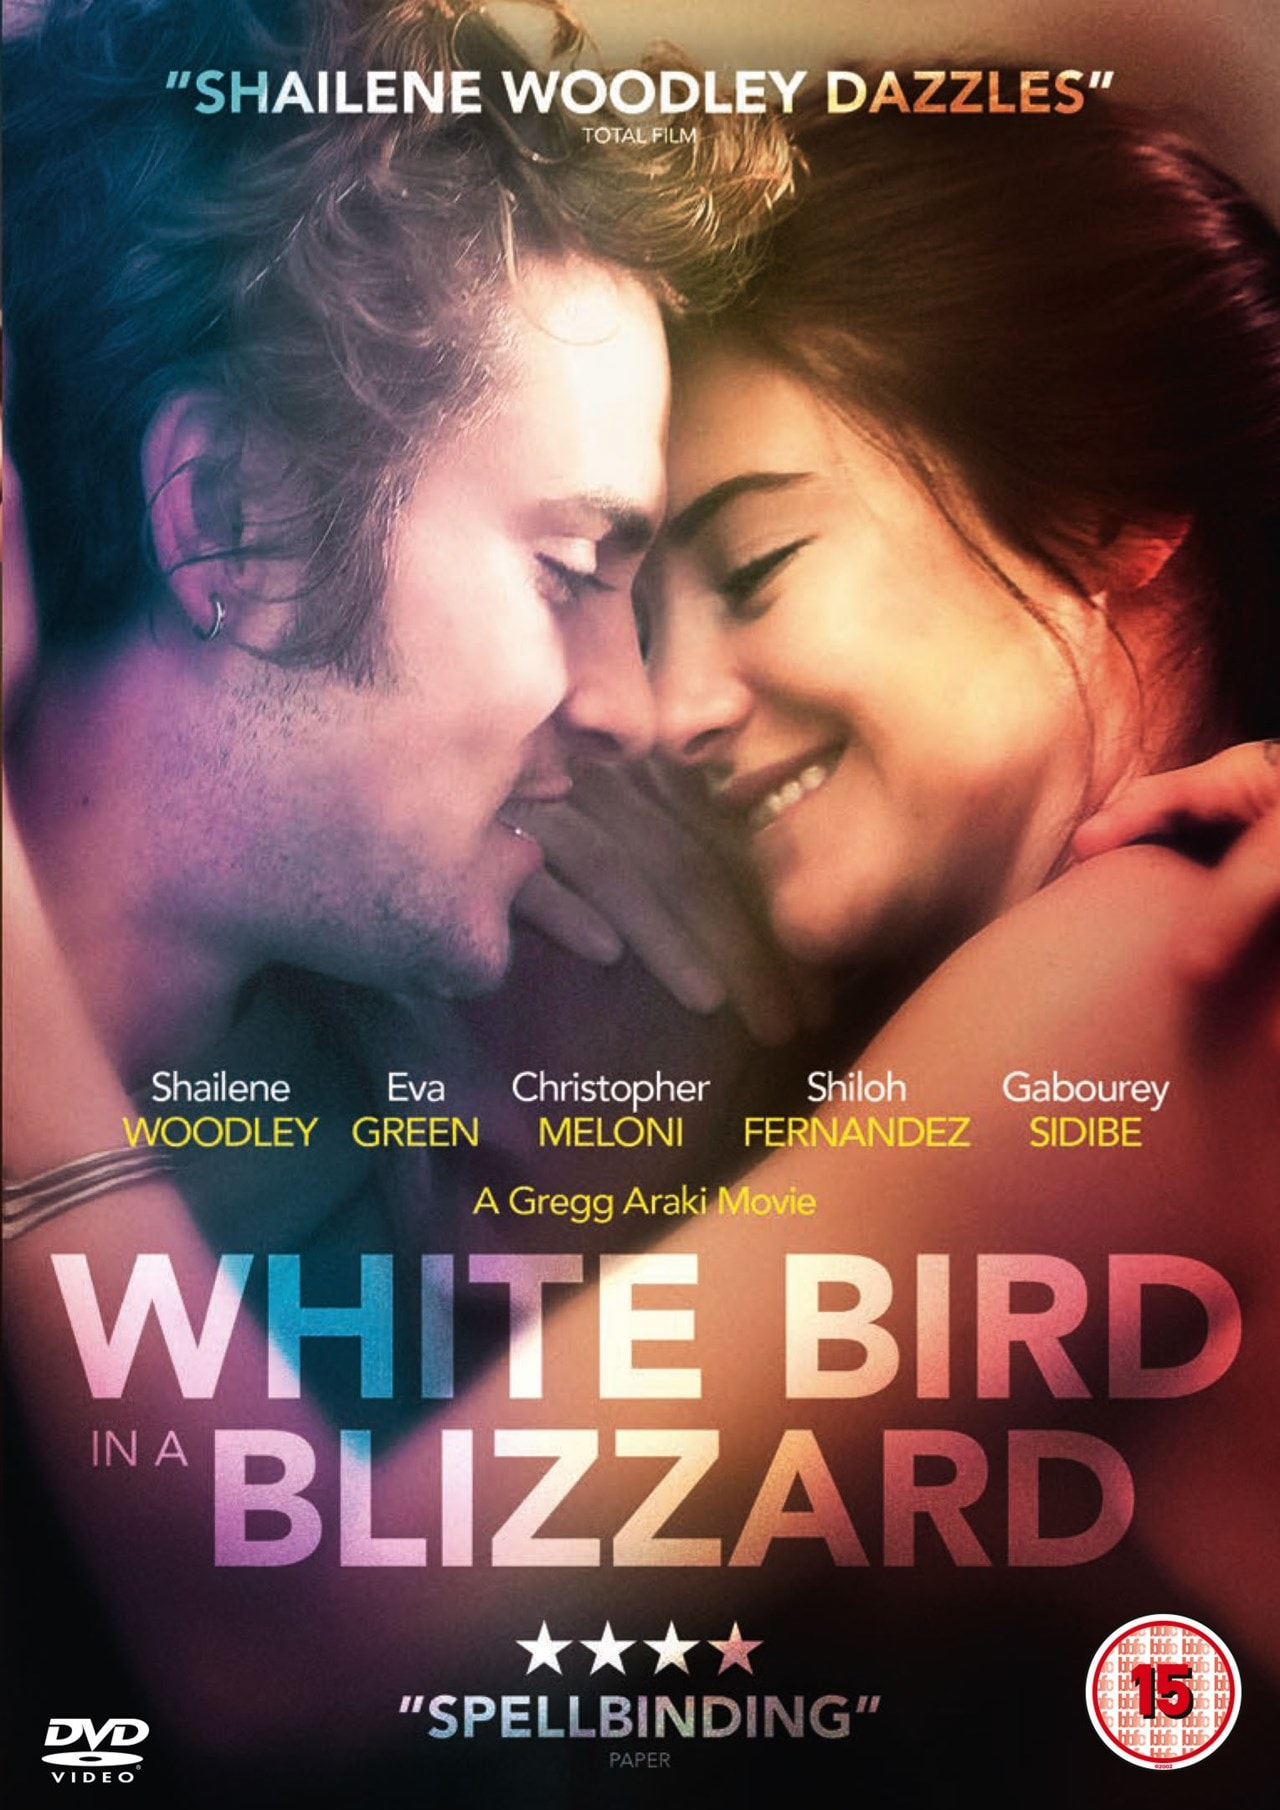 White Bird in a Blizzard - 1